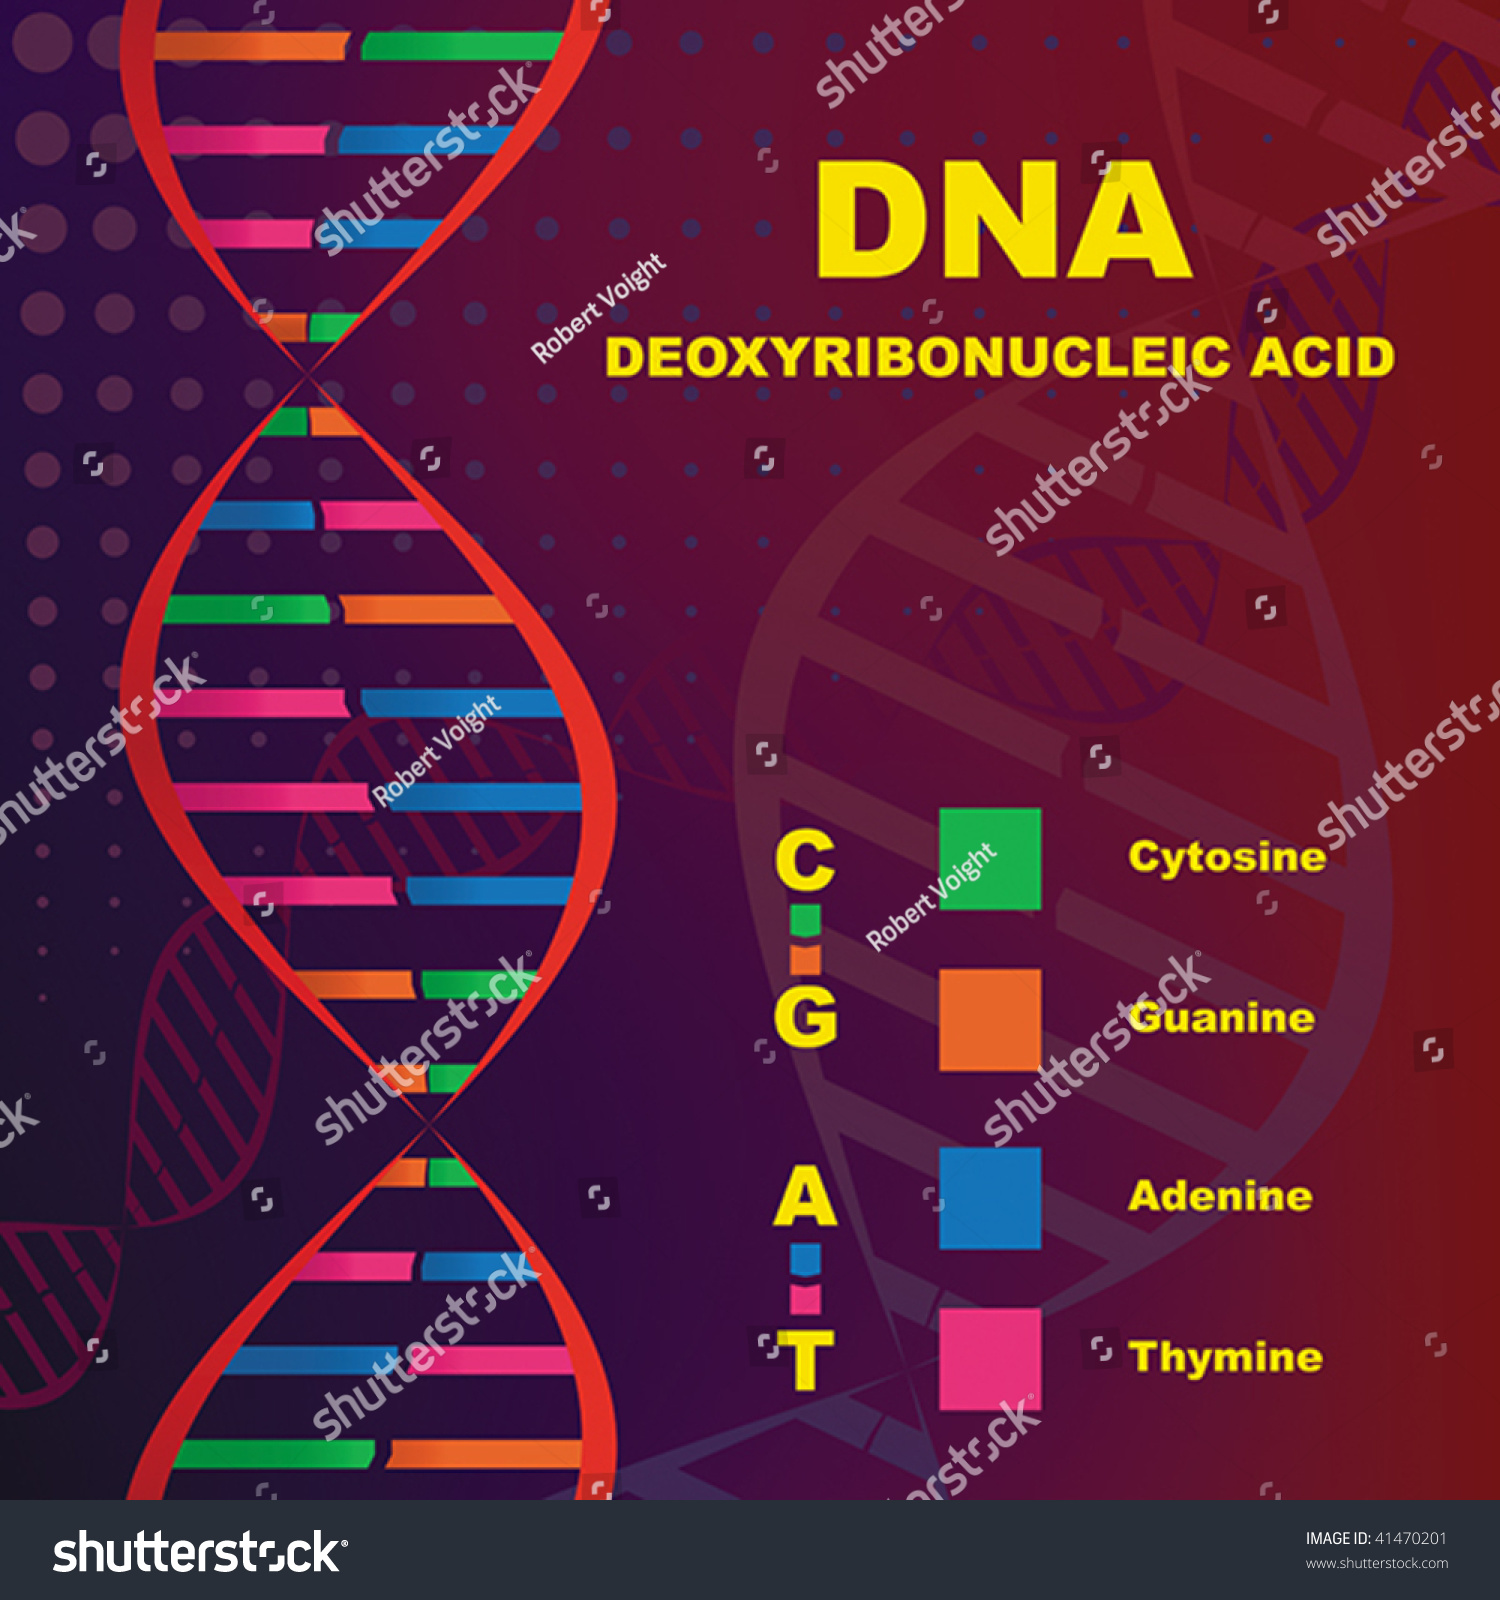 Deoxyribonucleic acid damage study in primary amenorrhea by comet assay and karyotyping